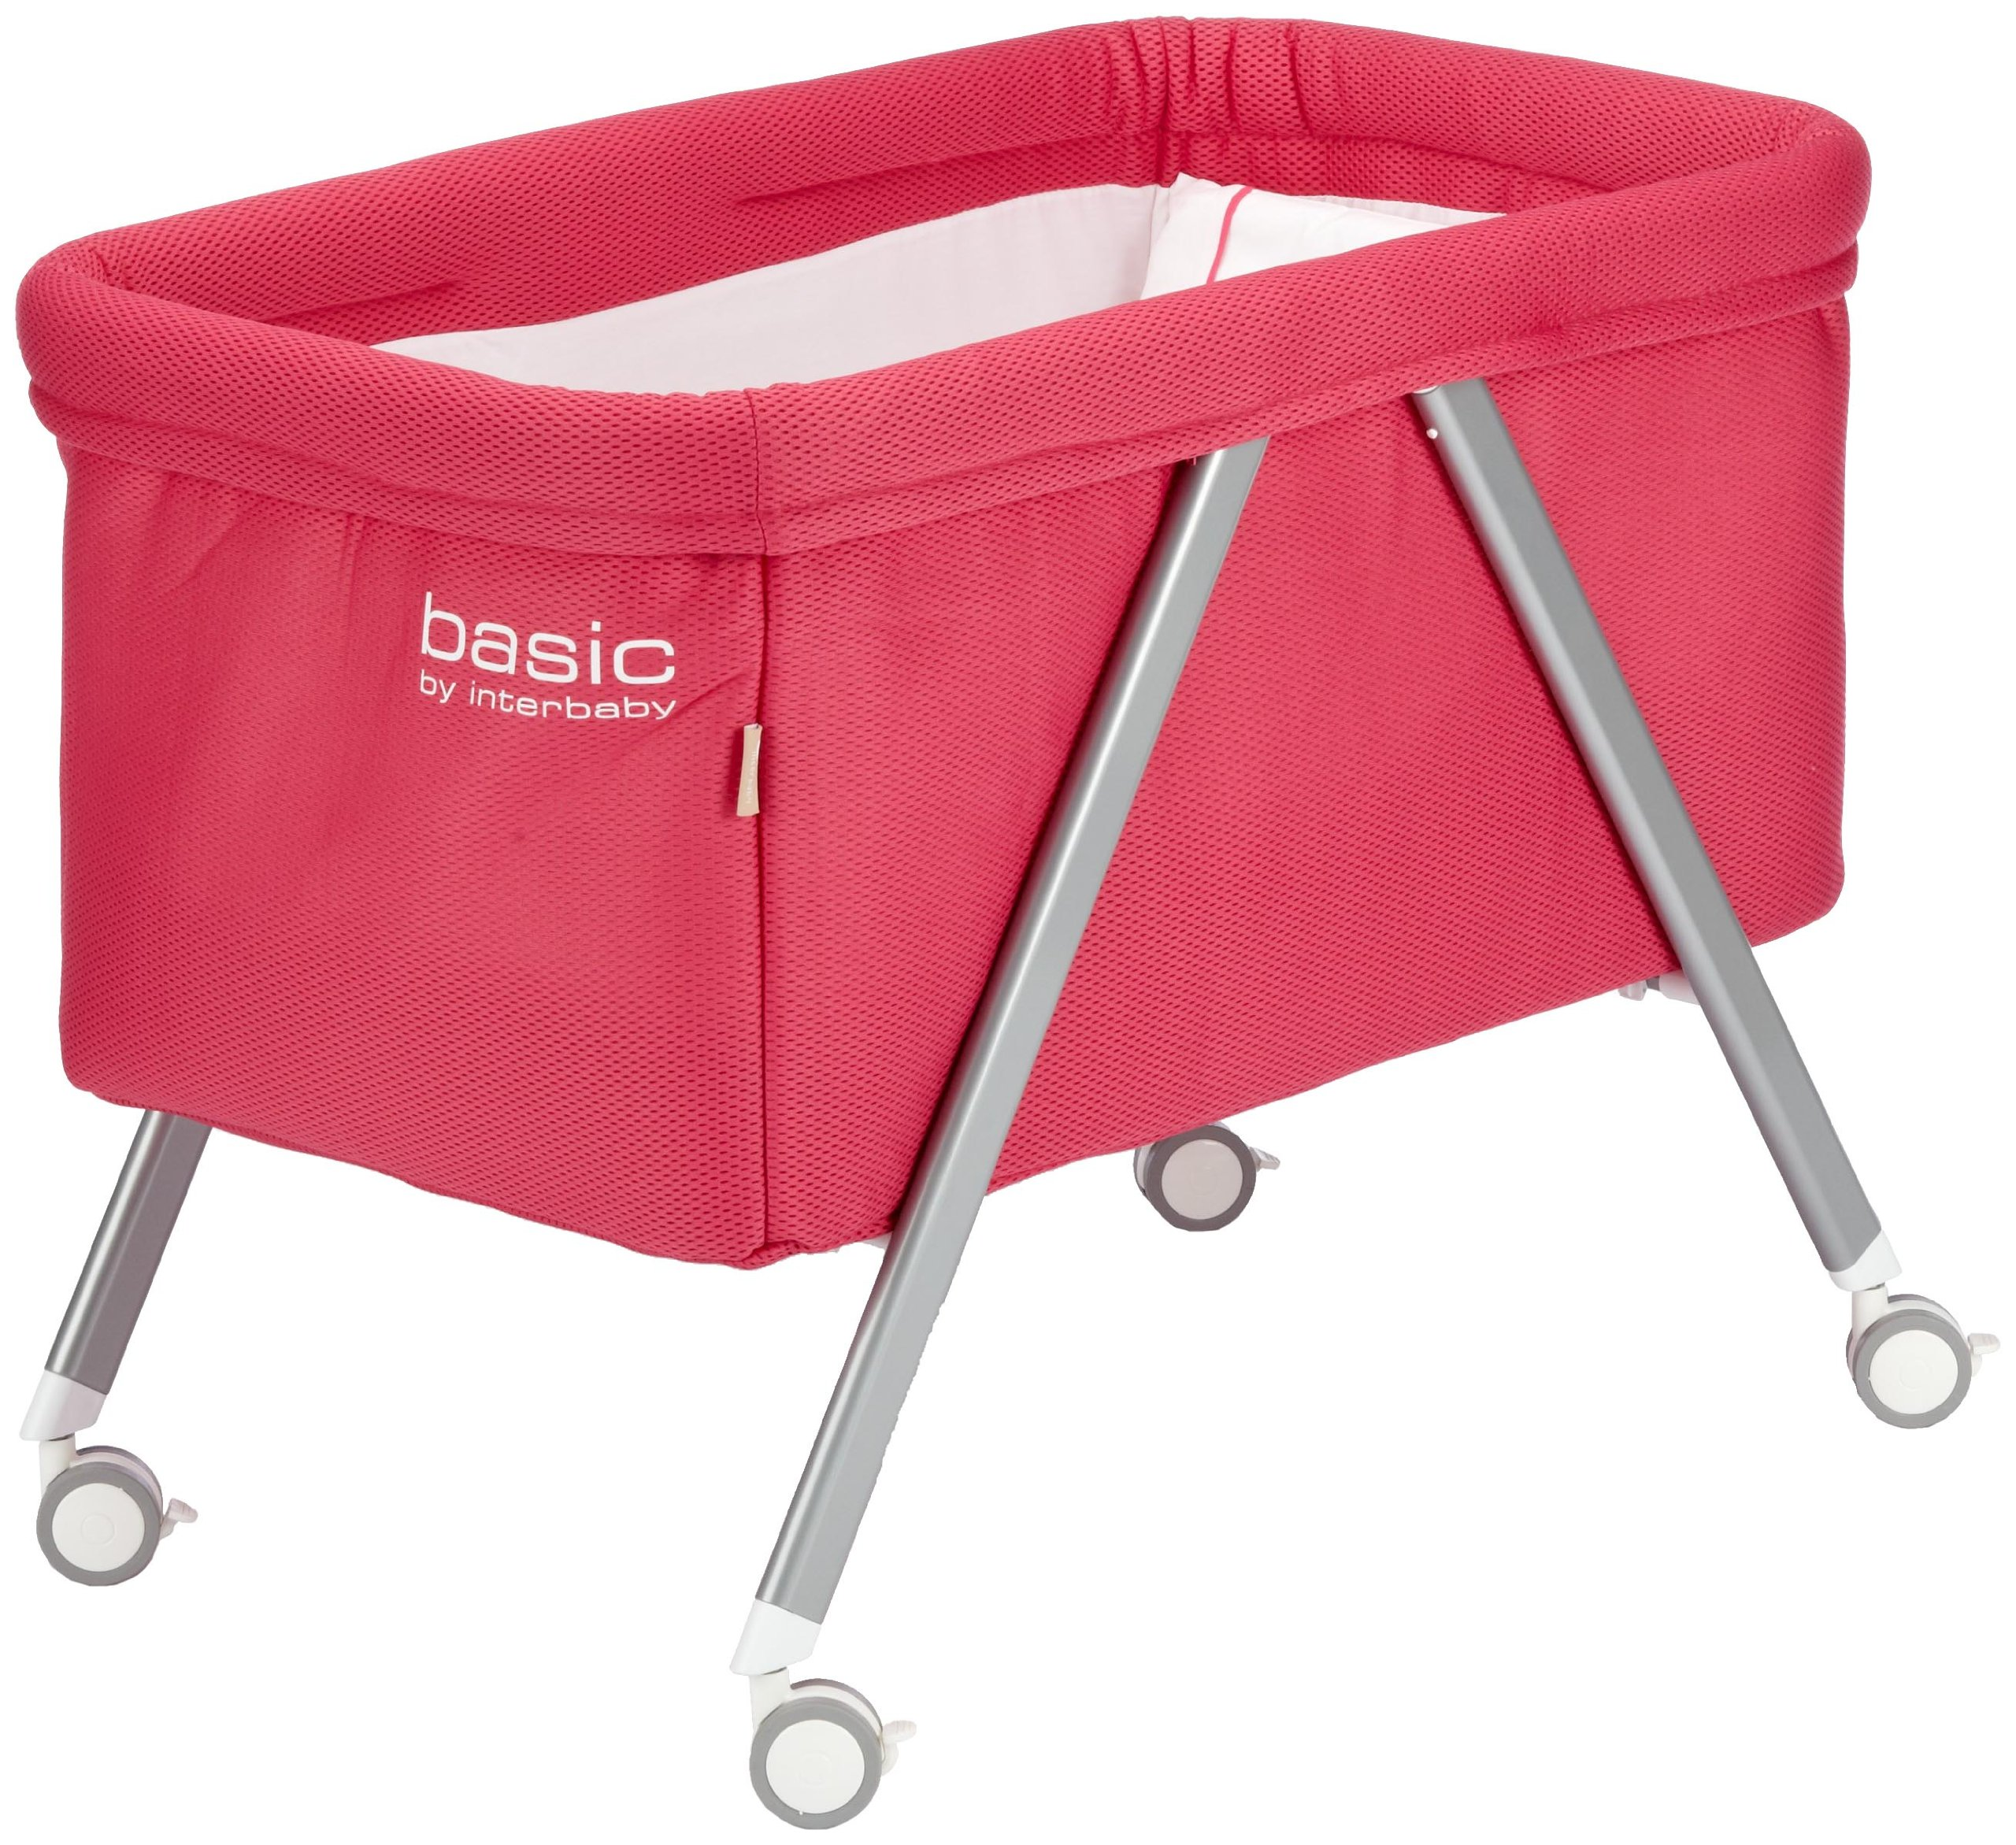 Interbaby Basic – minicuna with vestidura Gris/Fucsia  Four wheels minicot with brake Provided with mattress, sleeping bag and a mattress cover Easily removed from the structure of aluminium by a zip 1